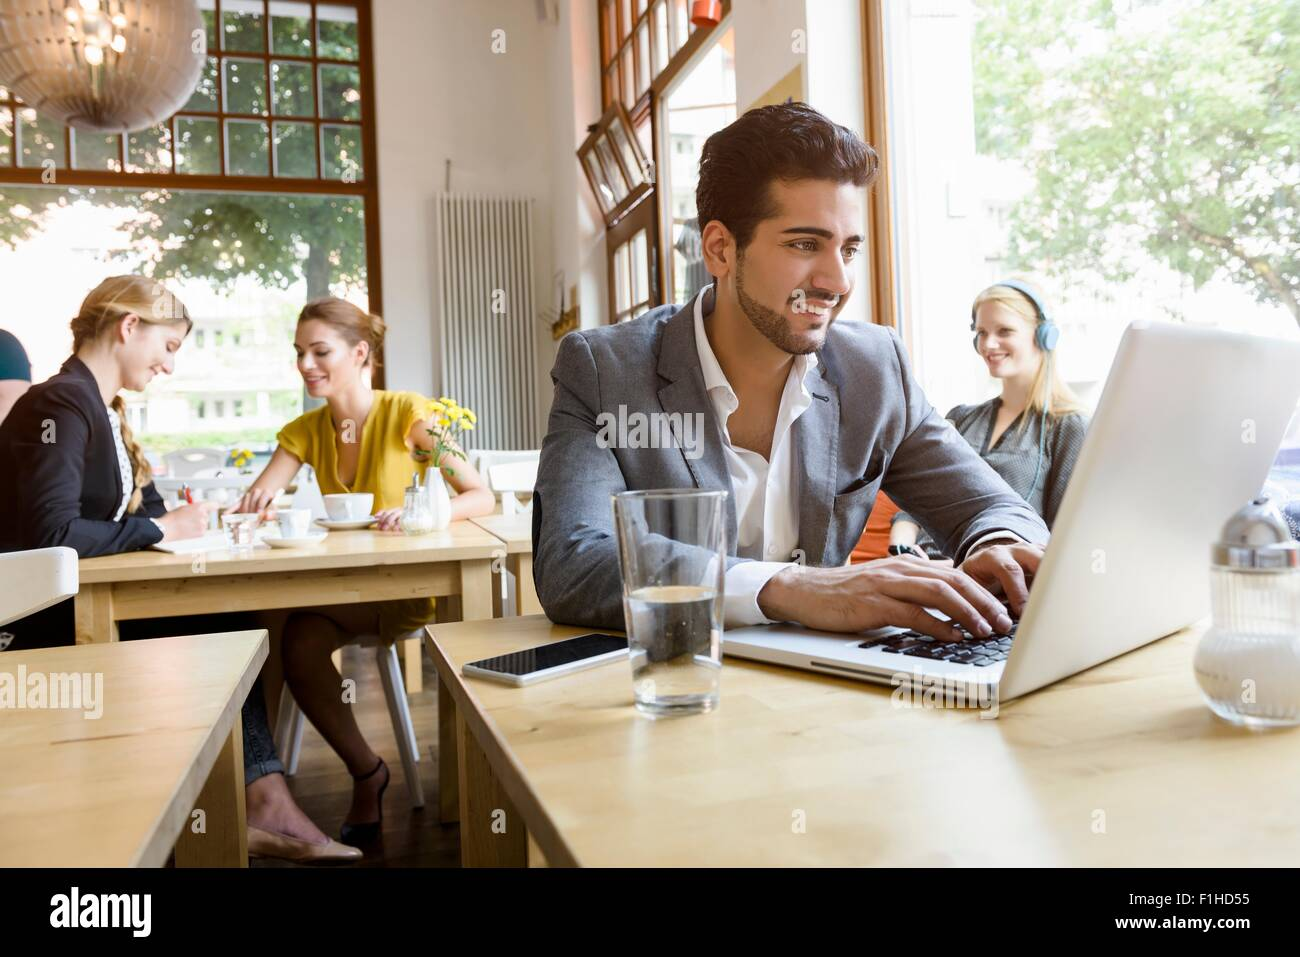 Young man using laptop in cafe - Stock Image